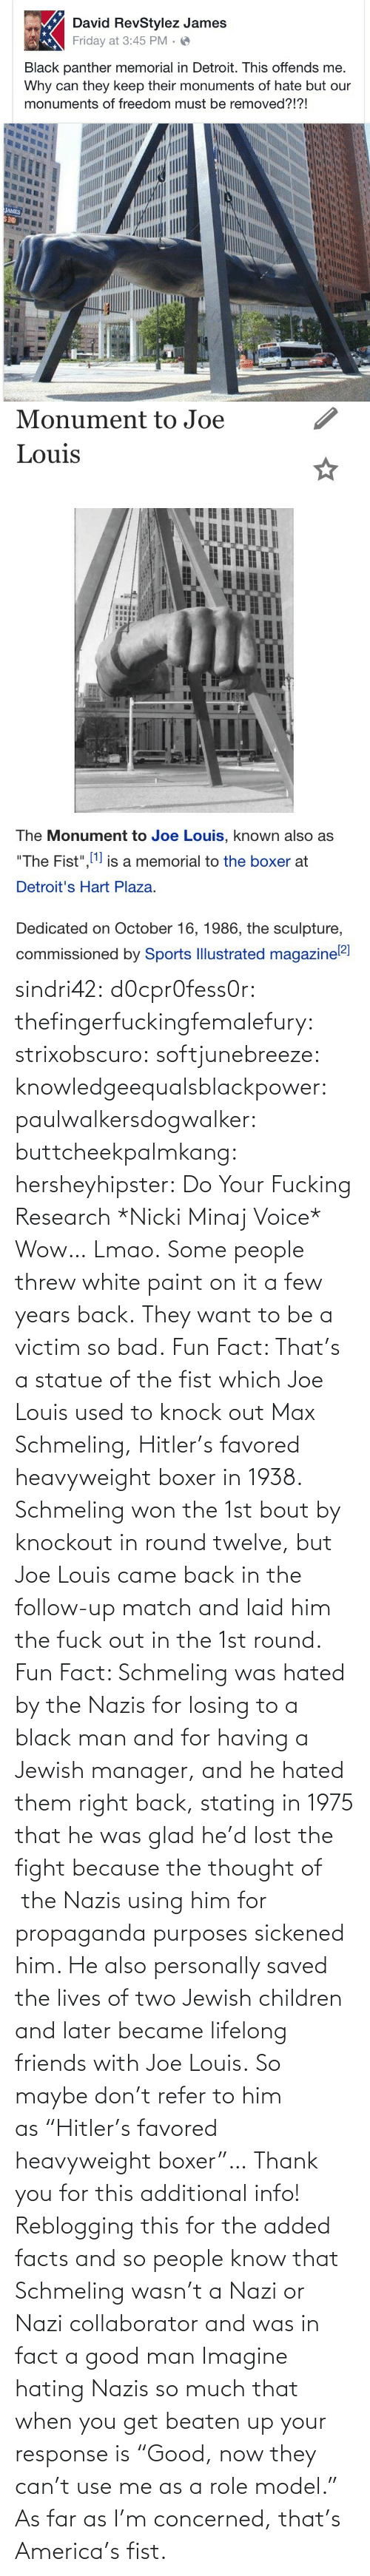 "model: sindri42:  d0cpr0fess0r:  thefingerfuckingfemalefury:  strixobscuro:  softjunebreeze:  knowledgeequalsblackpower:  paulwalkersdogwalker:   buttcheekpalmkang:   hersheyhipster:  Do Your Fucking Research *Nicki Minaj Voice*    Wow… Lmao.   Some people threw white paint on it a few years back.   They want to be a victim so bad.  Fun Fact: That's a statue of the fist which Joe Louis used to knock out Max Schmeling, Hitler's favored heavyweight boxer in 1938. Schmeling won the 1st bout by knockout in round twelve, but Joe Louis came back in the follow-up match and laid him the fuck out in the 1st round.  Fun Fact: Schmeling was hated by the Nazis for losing to a black man and for having a Jewish manager, and he hated them right back, stating in 1975 that he was glad he'd lost the fight because the thought of  the Nazis using him for propaganda purposes sickened him. He also personally saved the lives of two Jewish children and later became lifelong friends with Joe Louis. So maybe don't refer to him as ""Hitler's favored heavyweight boxer""…  Thank you for this additional info! Reblogging this for the added facts and so people know that Schmeling wasn't a Nazi or Nazi collaborator and was in fact a good man   Imagine hating Nazis so much that when you get beaten up your response is ""Good, now they can't use me as a role model.""  As far as I'm concerned, that's America's fist."